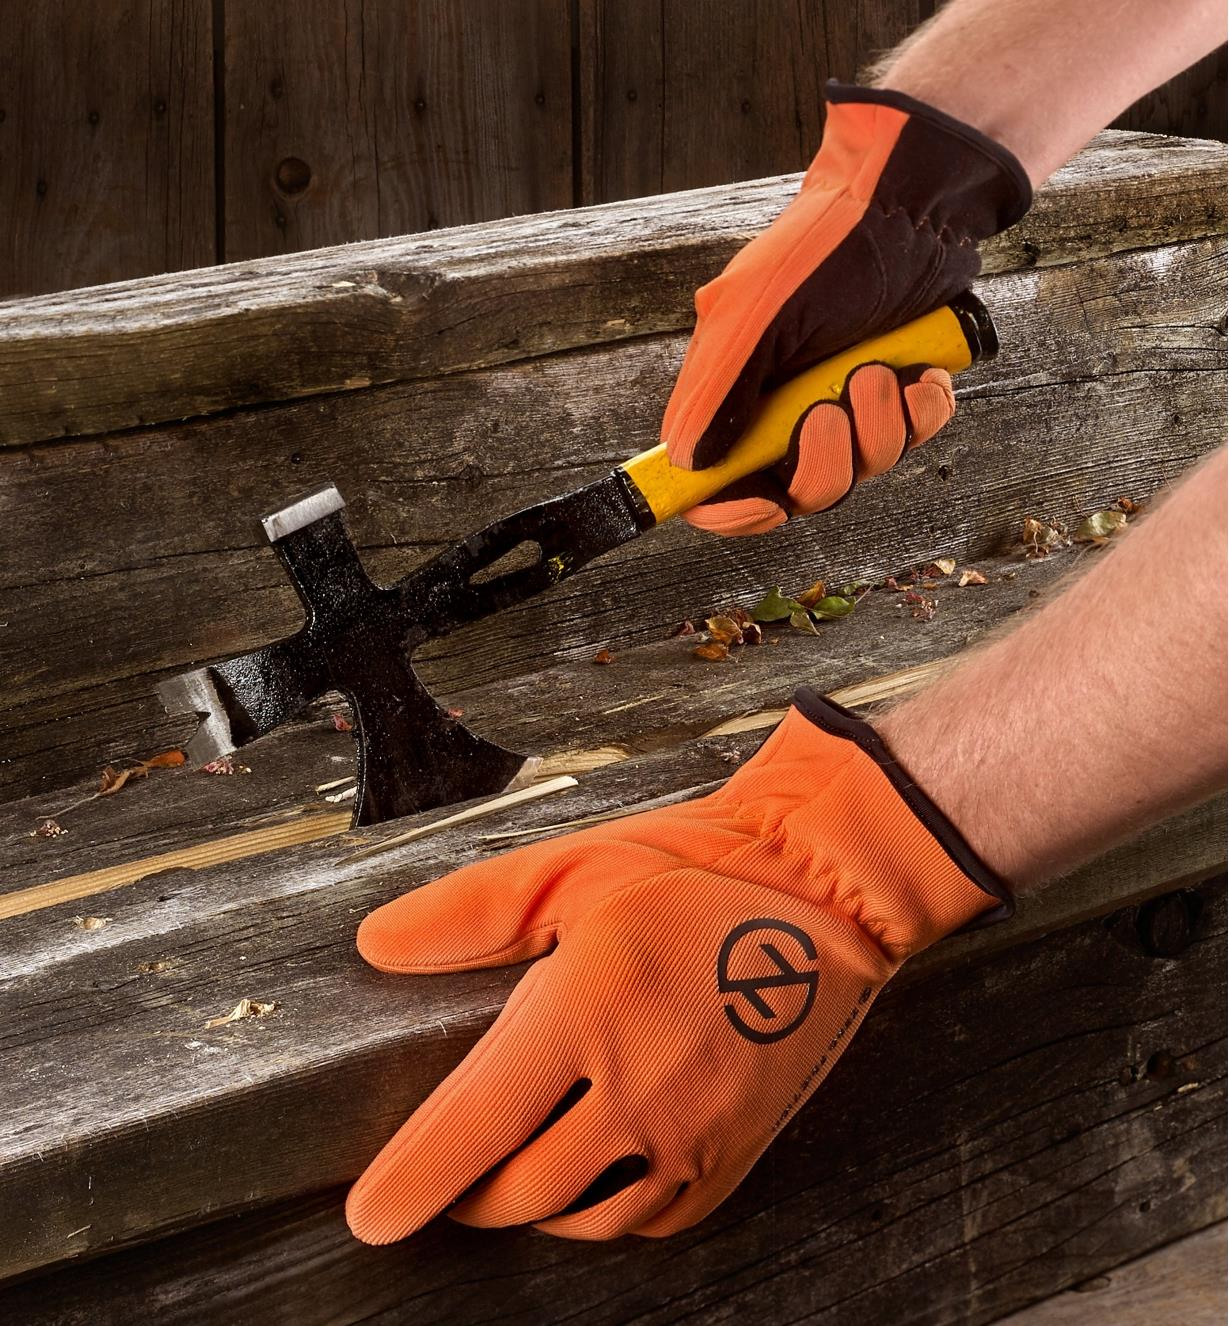 A person wears a pair of Universal-Fit gloves while dismantling an old set of wooden deck steps